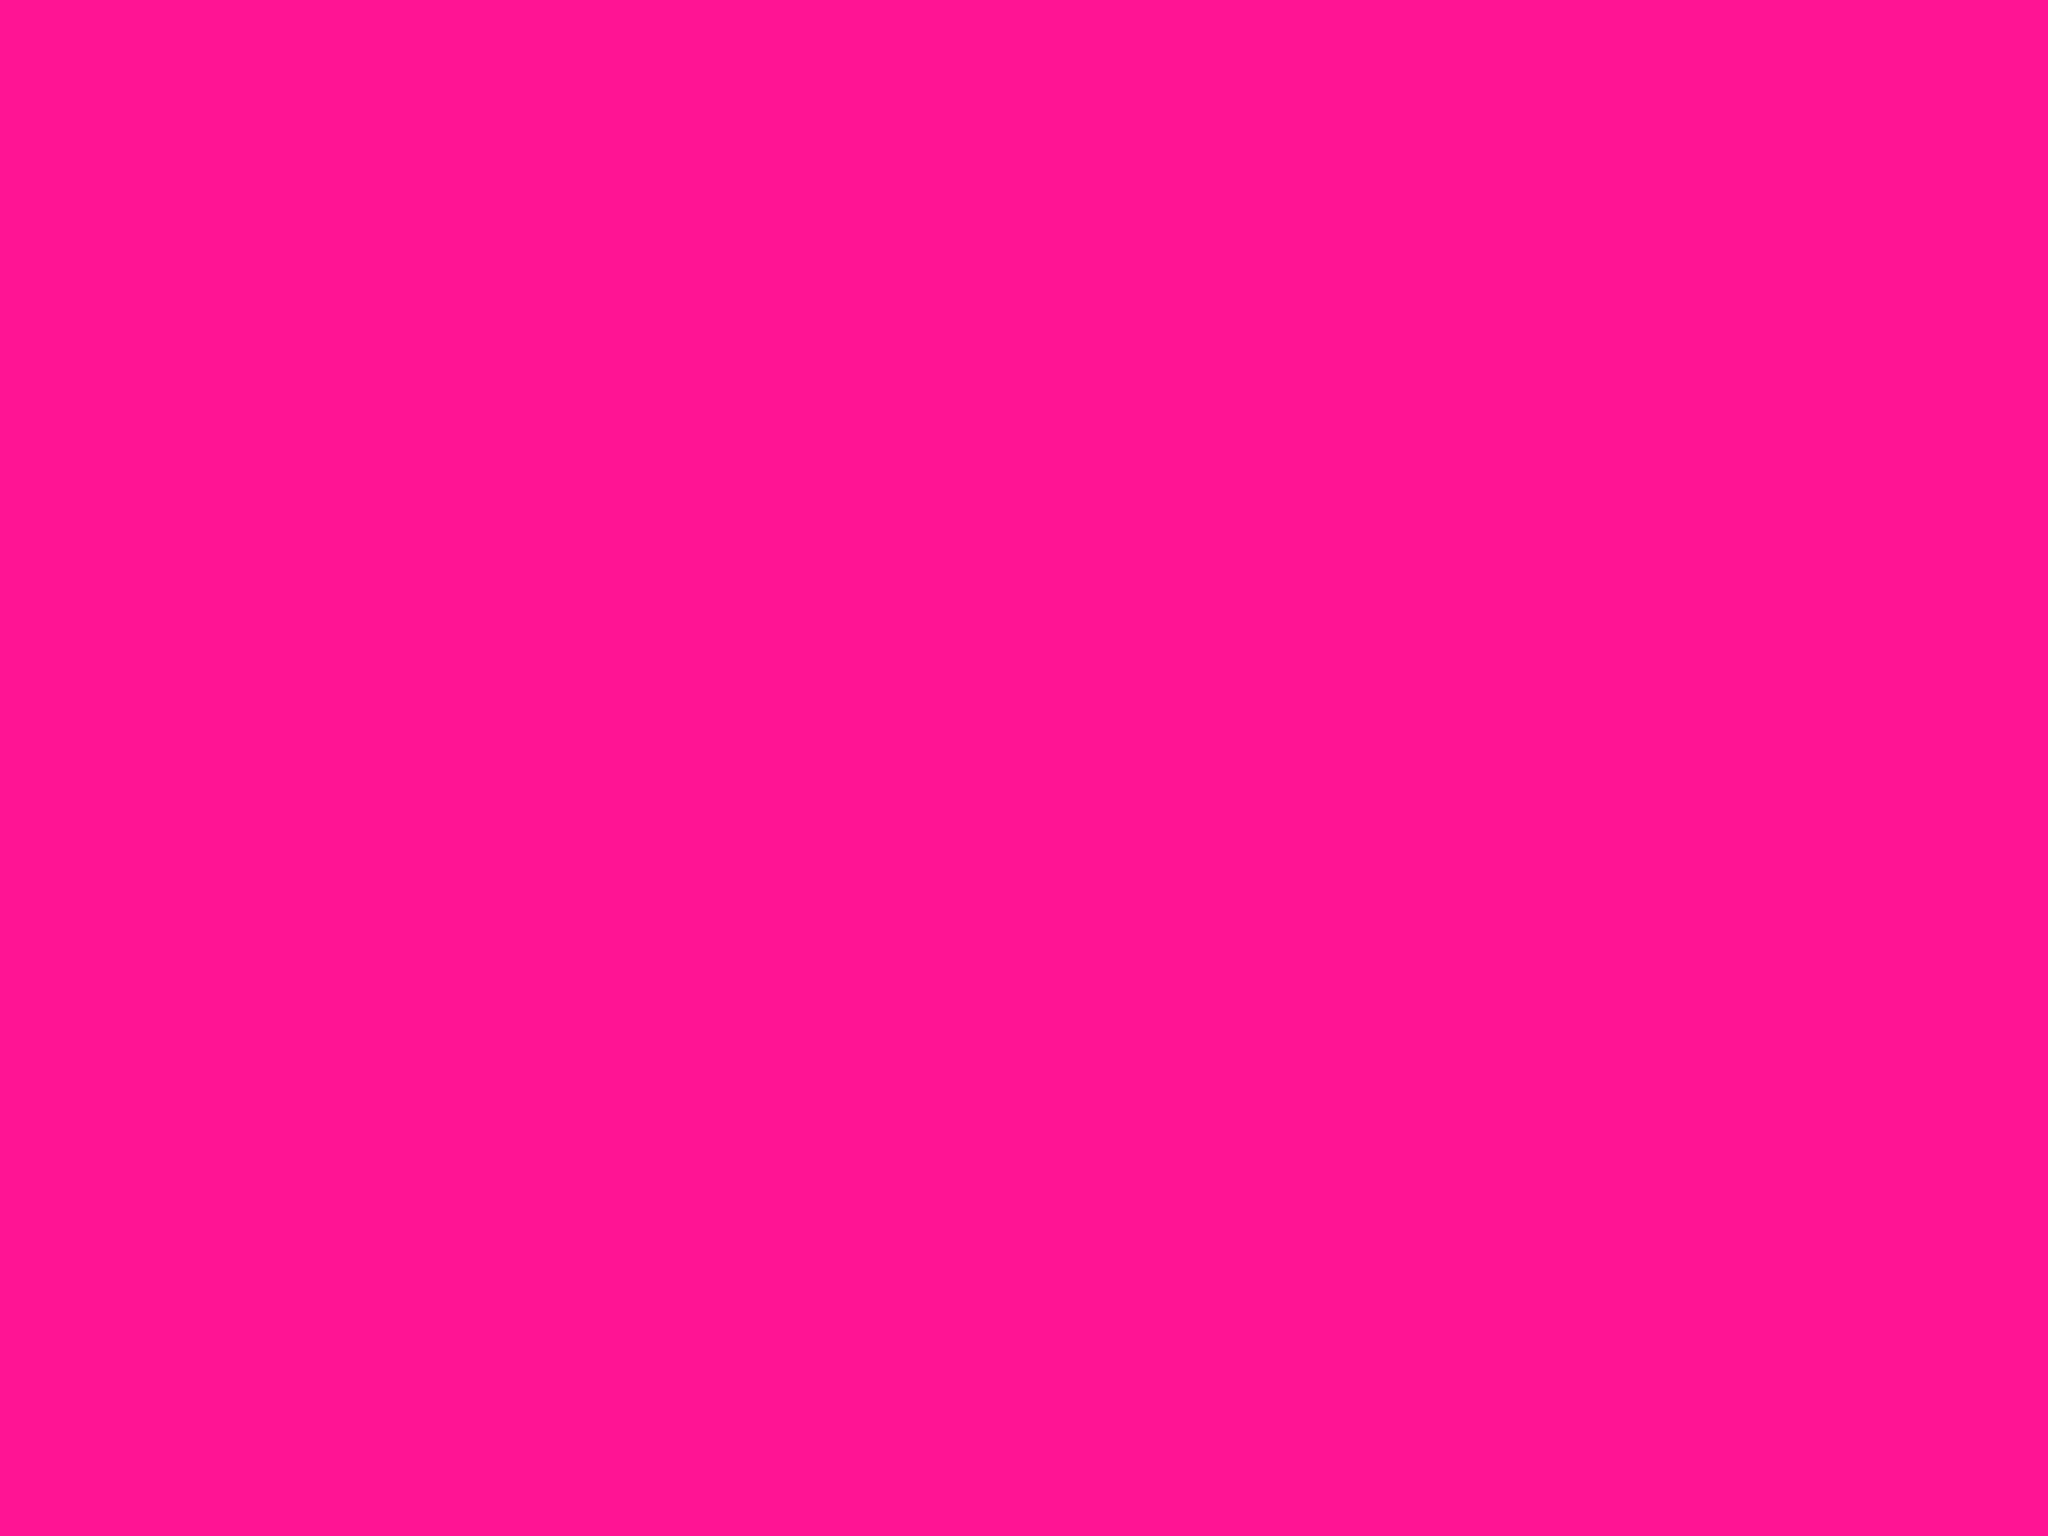 2048x1536 Fluorescent Pink Solid Color Background